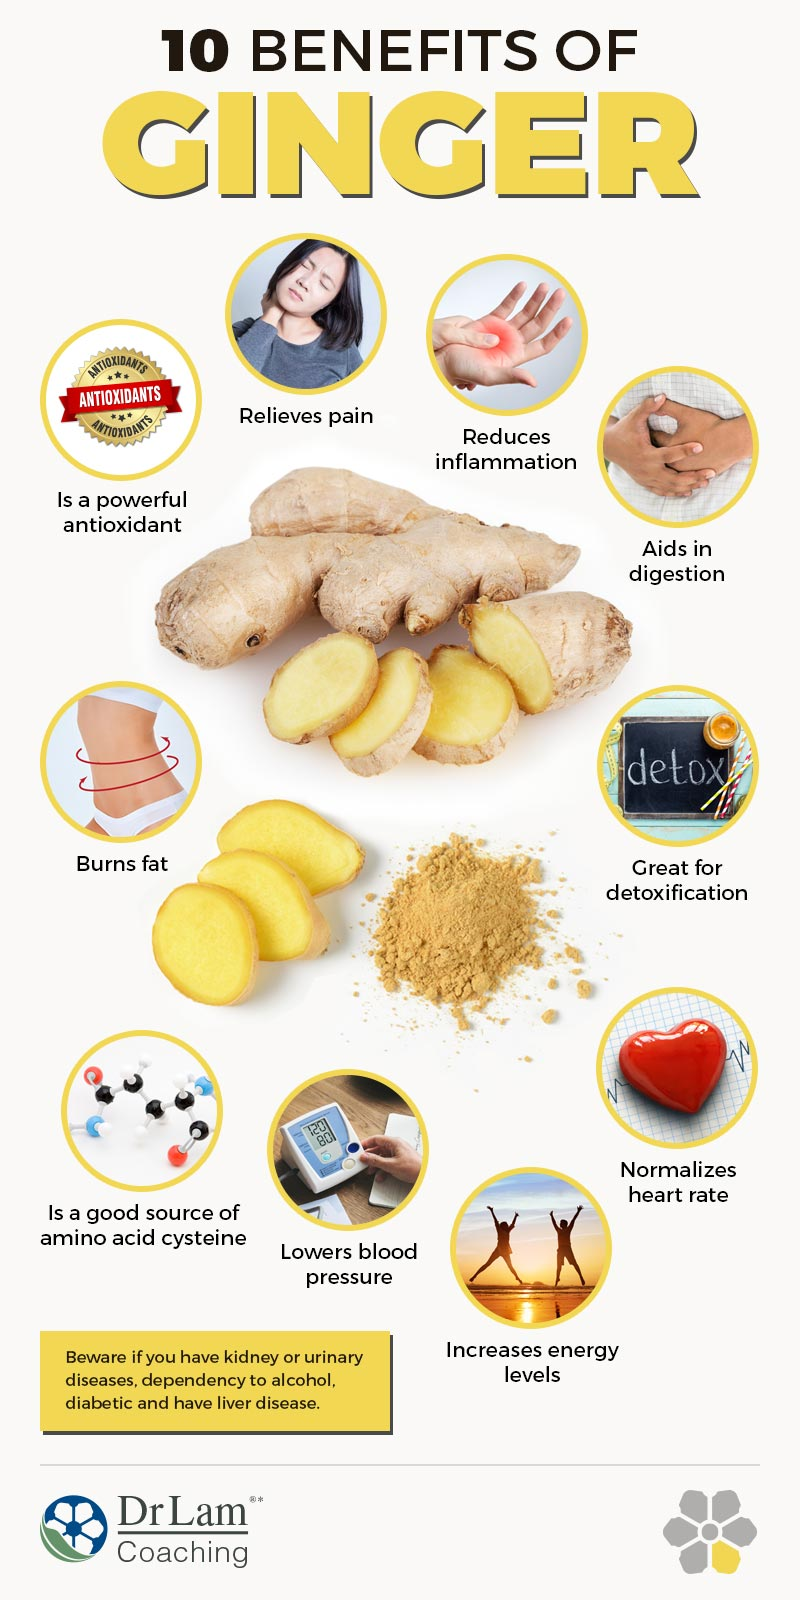 Check out this easy to understand infographic about 10 benefits of ginger